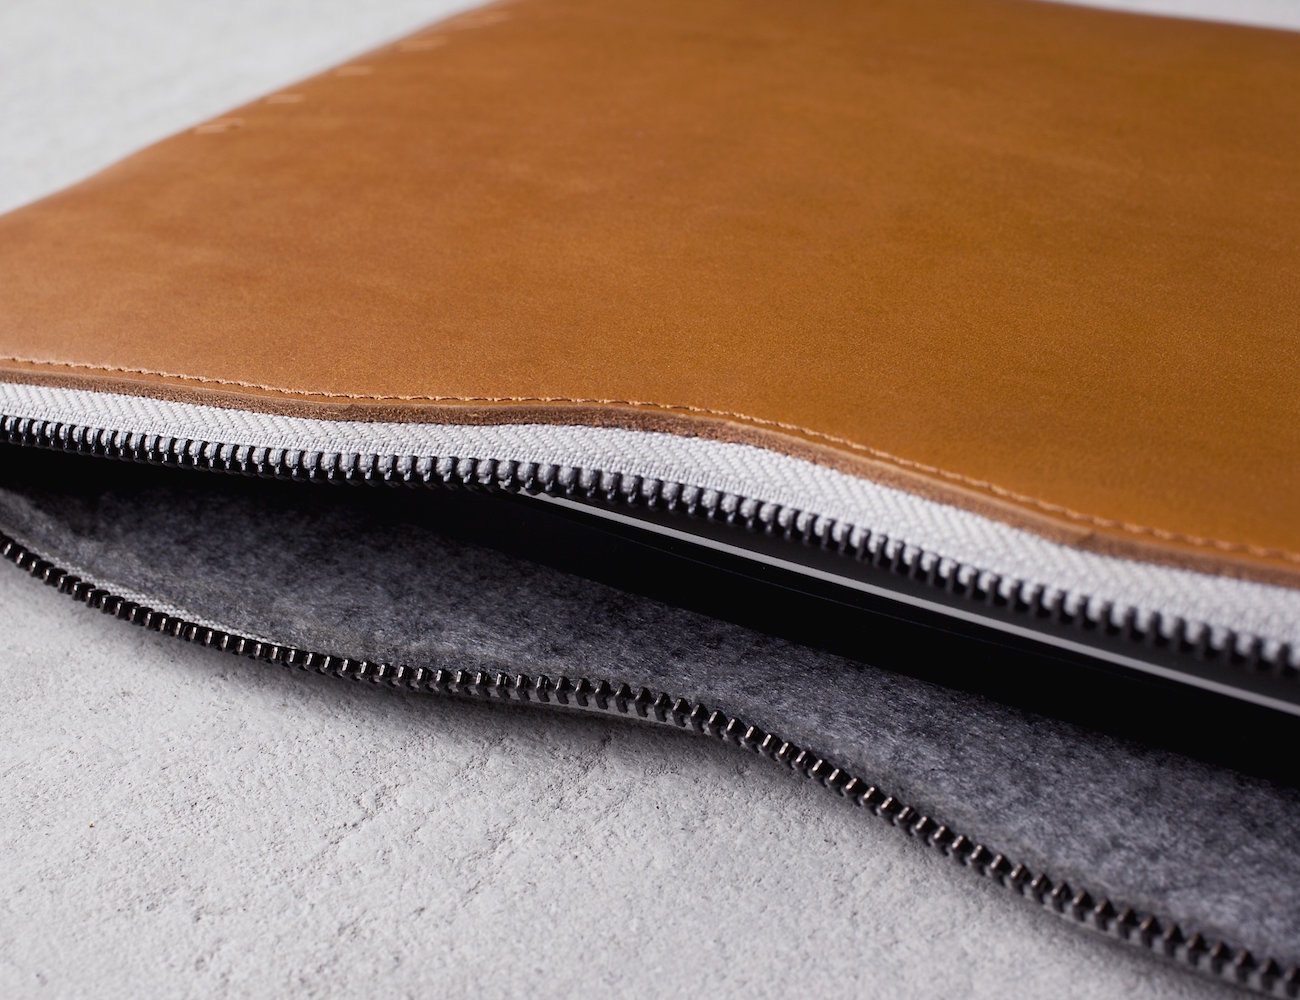 leather-macbook-folio-sleeve-by-mujjo-01